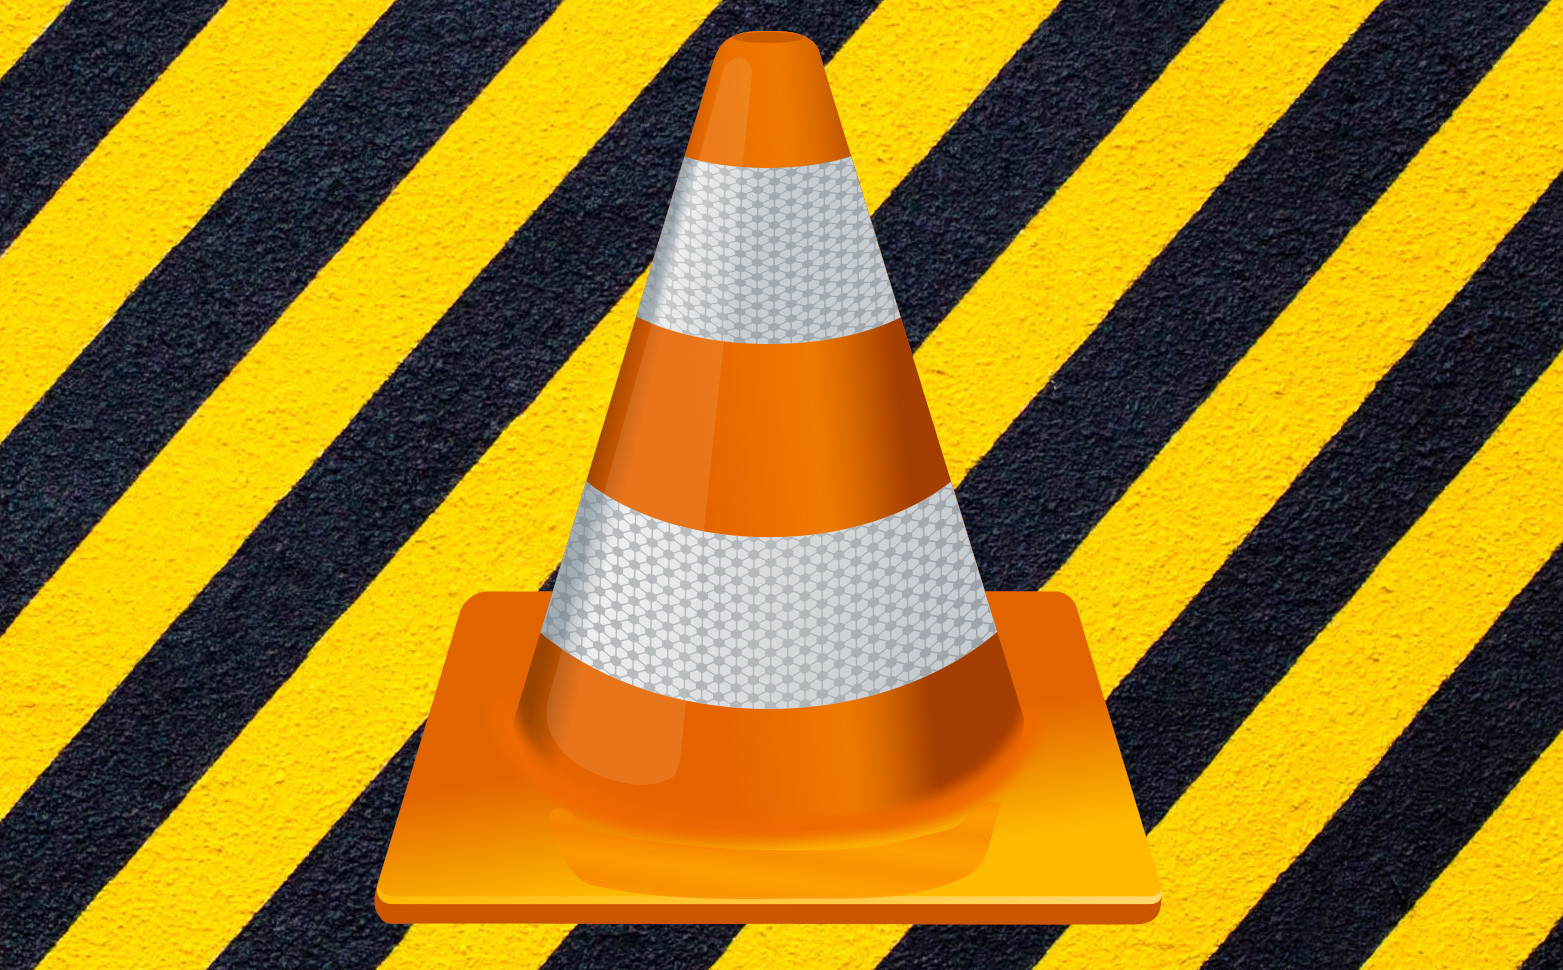 VLC media player has a critical security flaw | PC Gamer